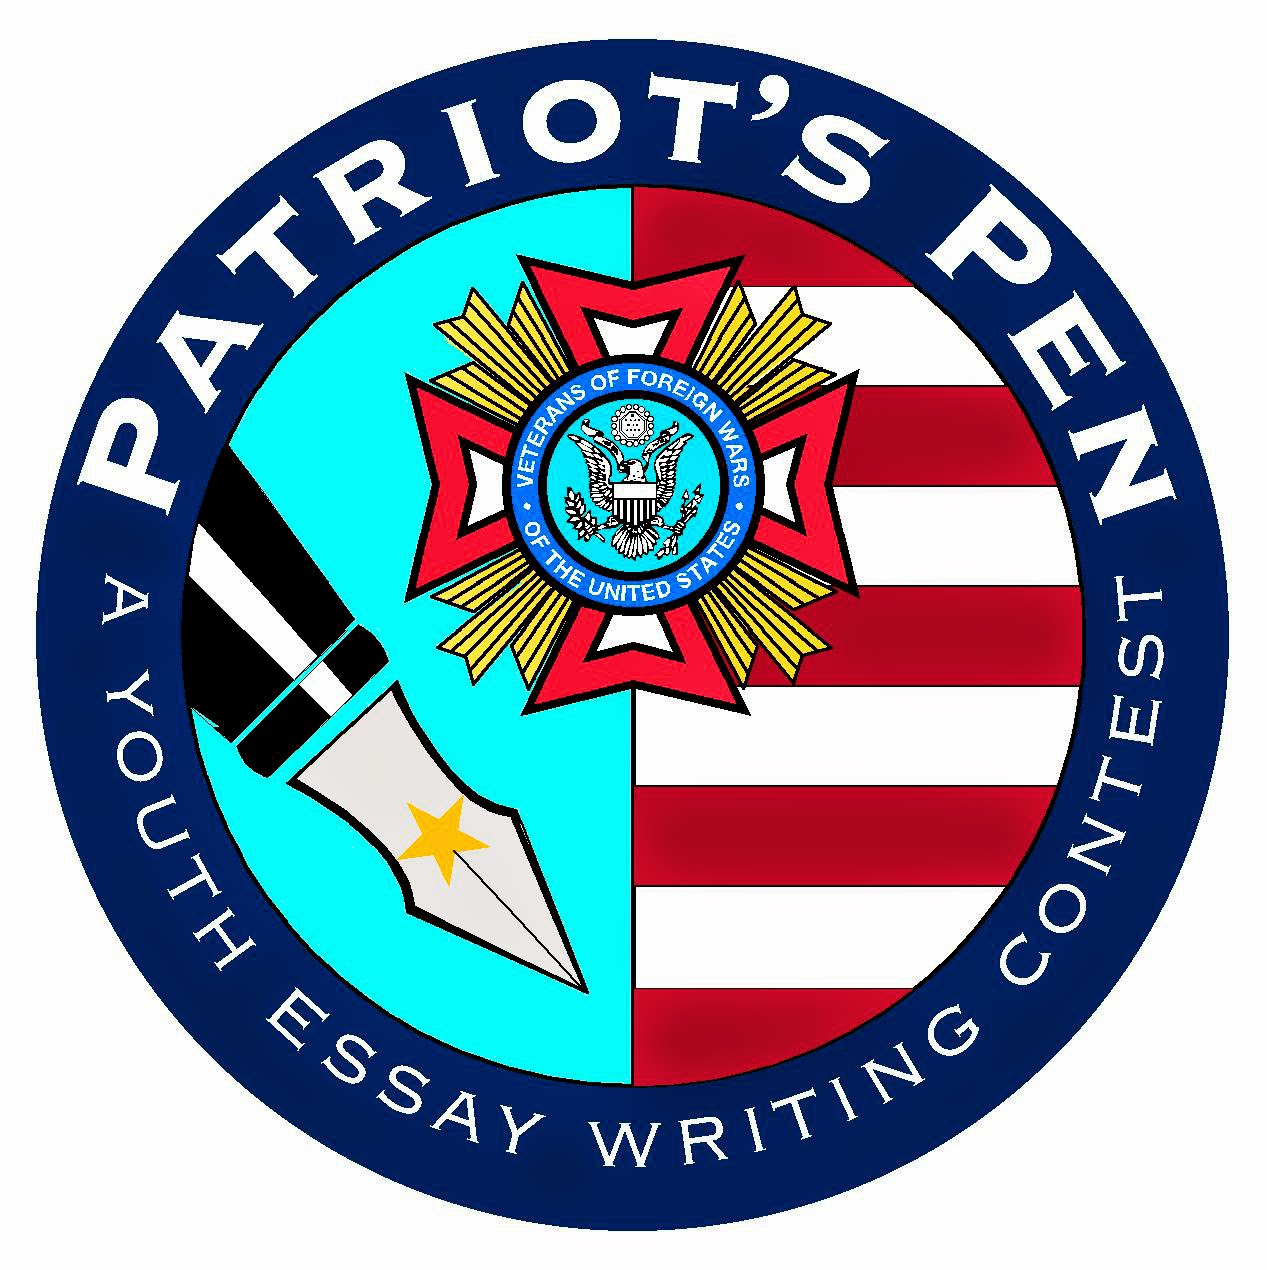 scholarships voice of democracy and patriot s pen vfw auxiliary  each year more than 125 000 students in grades 6 8 enter the vfw s patriot s pen youth essay contest the first place winner from each state competes for